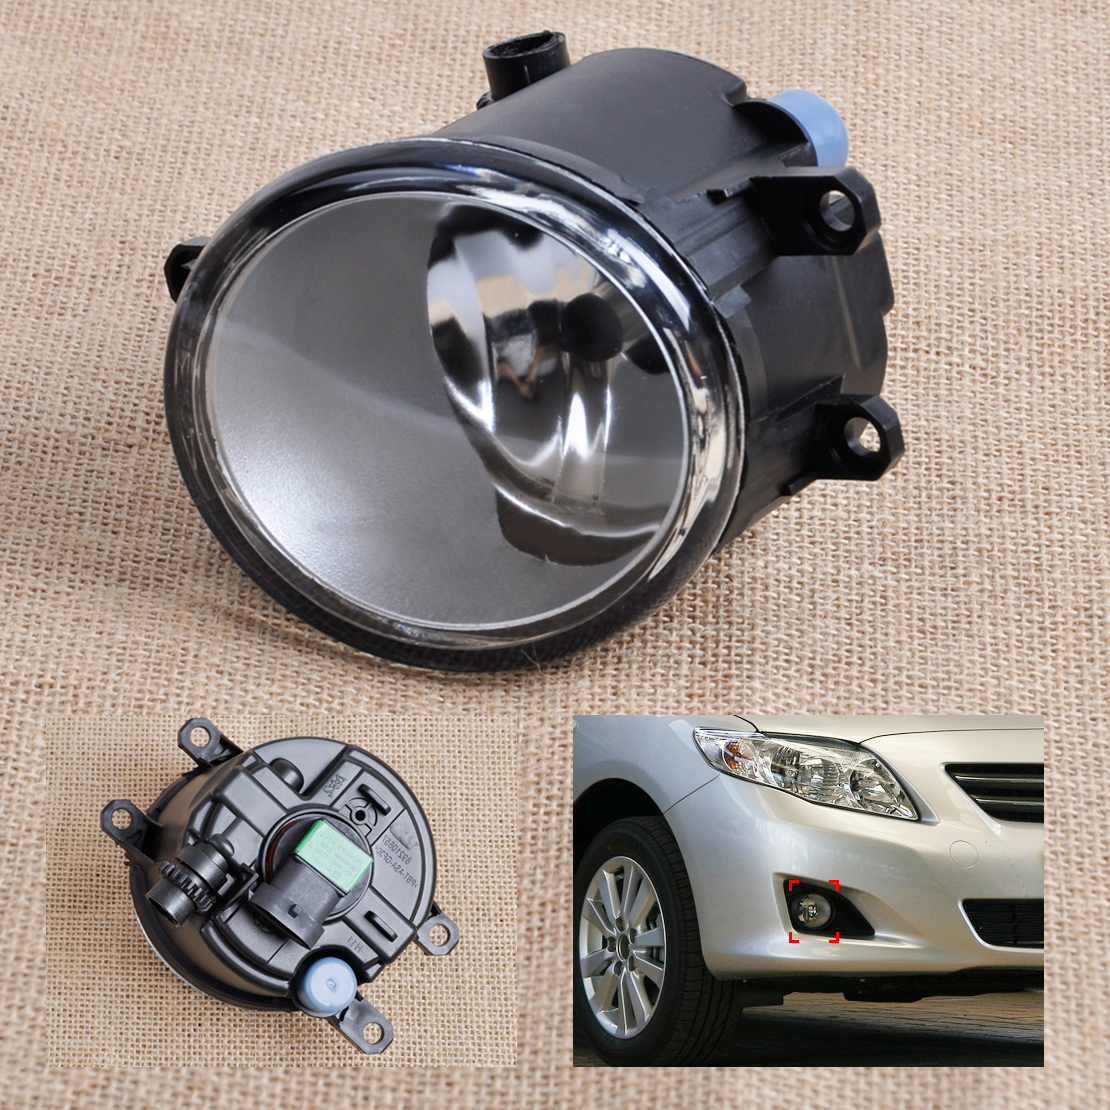 beler Front Right Side Fog light Lamp 81210-06050 35501-57L00 For Toyota Camry Corolla Yaris Lexus GS350 GS450h LX570 LX570 car front bumper fog lamp lights for toyota yaris camry avensis rav4 corolla highlander matrix prius for lexus rx270 lx570